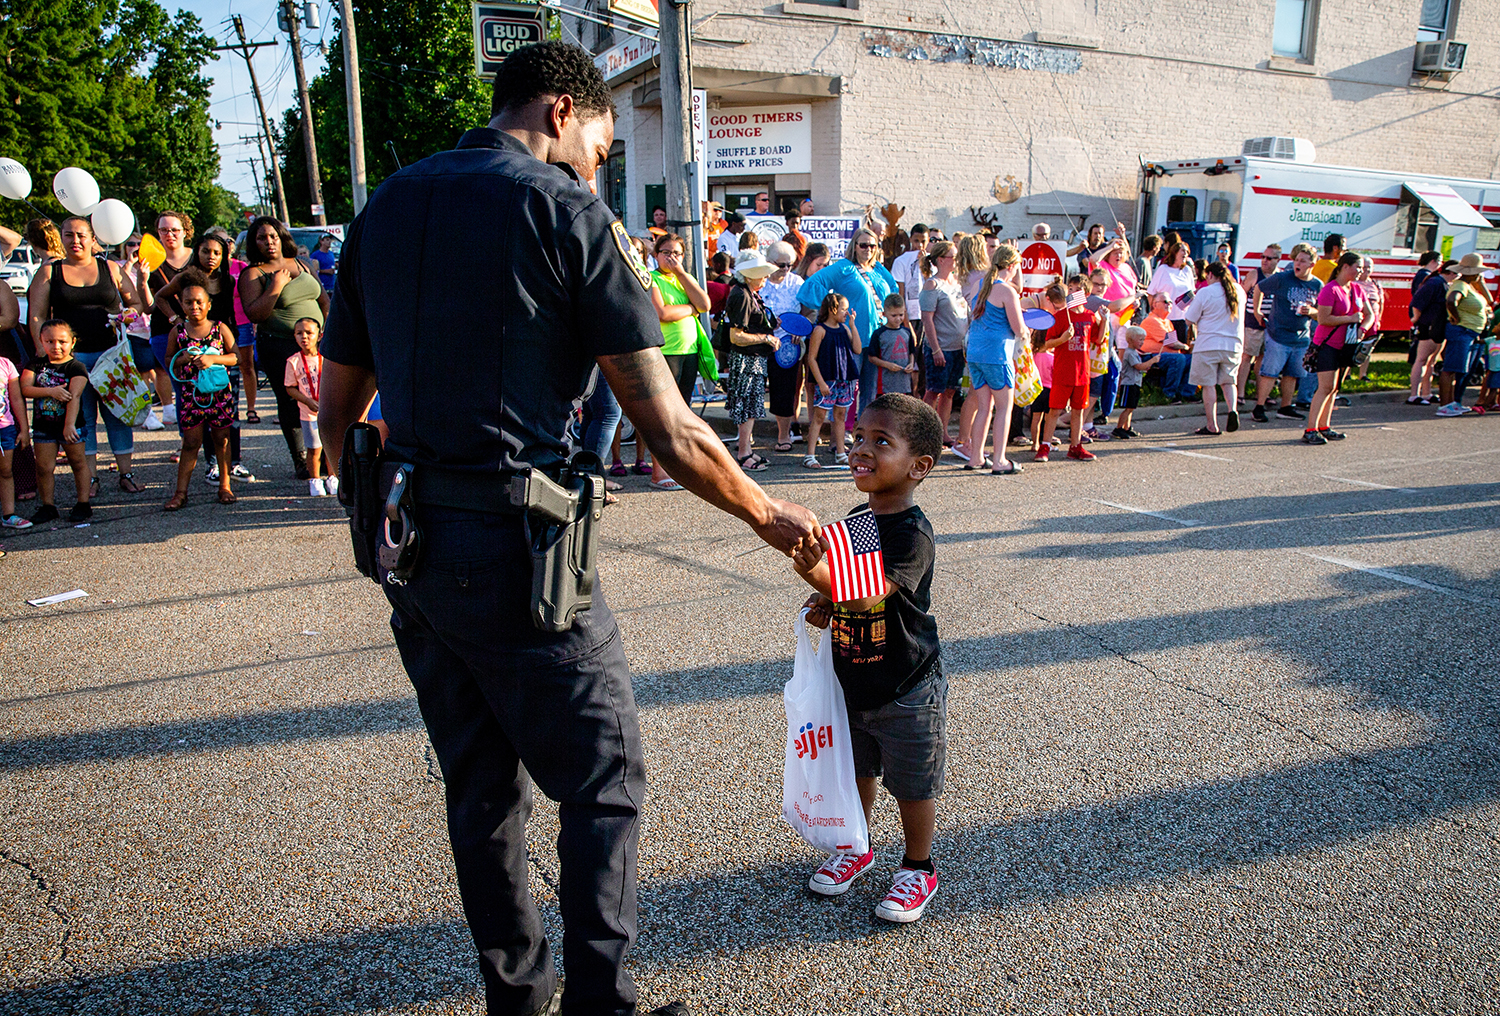 Springfield Police Officer Lamar Moore hands an American Flag to a young boy as he helps him out of the street as the parade enters the Main Gate during the Illinois State Fair Twilight Parade, Thursday, Aug. 9, 2018, in Springfield, Ill. [Justin L. Fowler/The State Journal-Register]